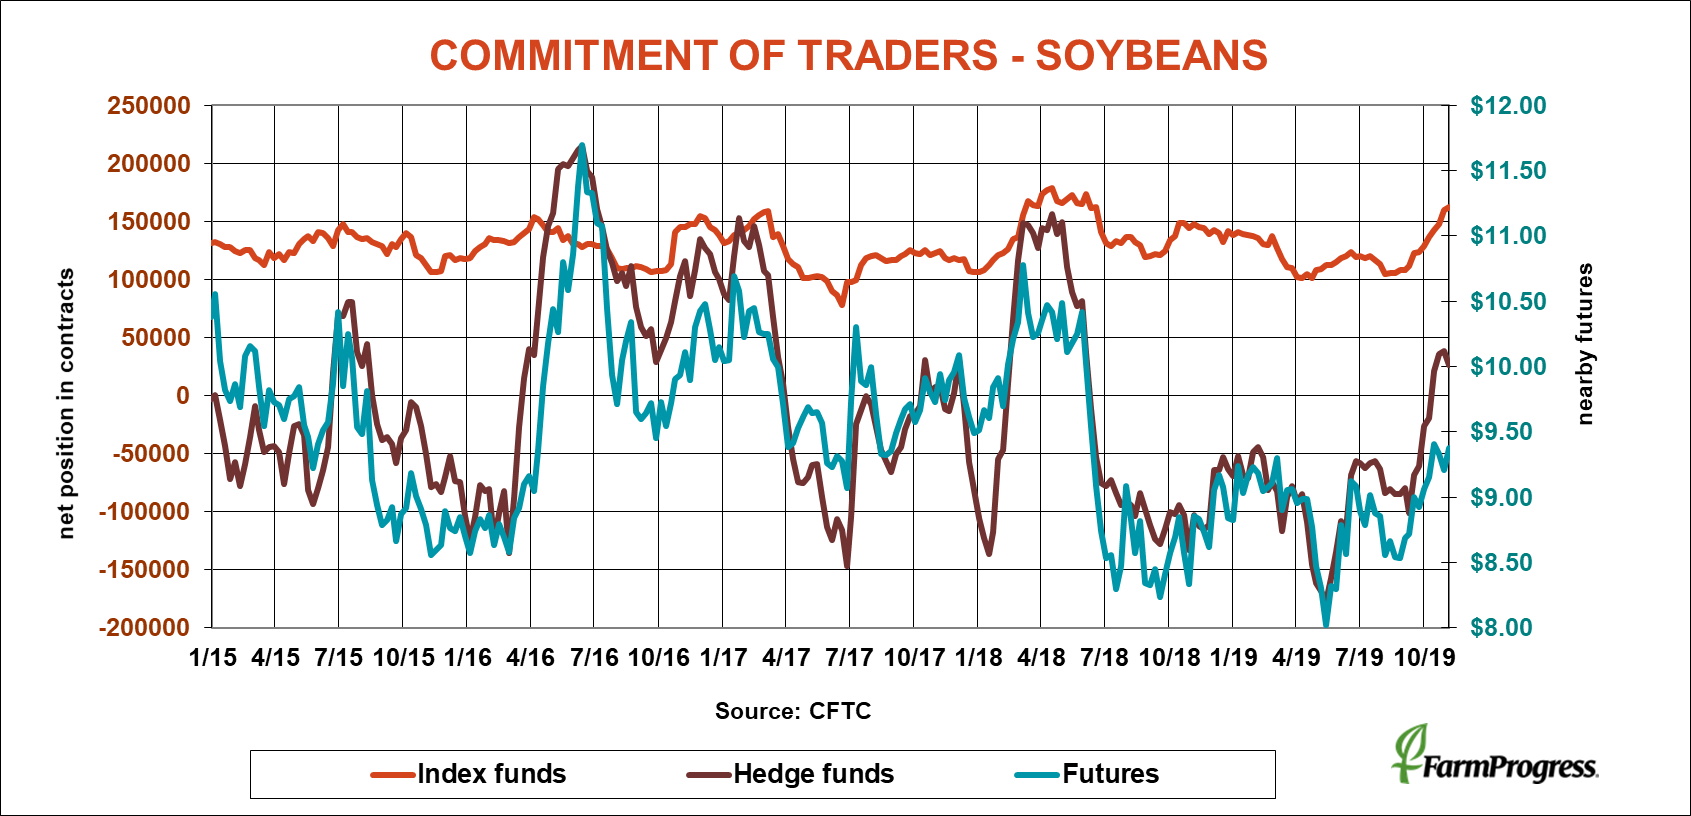 commitment-traders-soybeans-cftc-110819.png